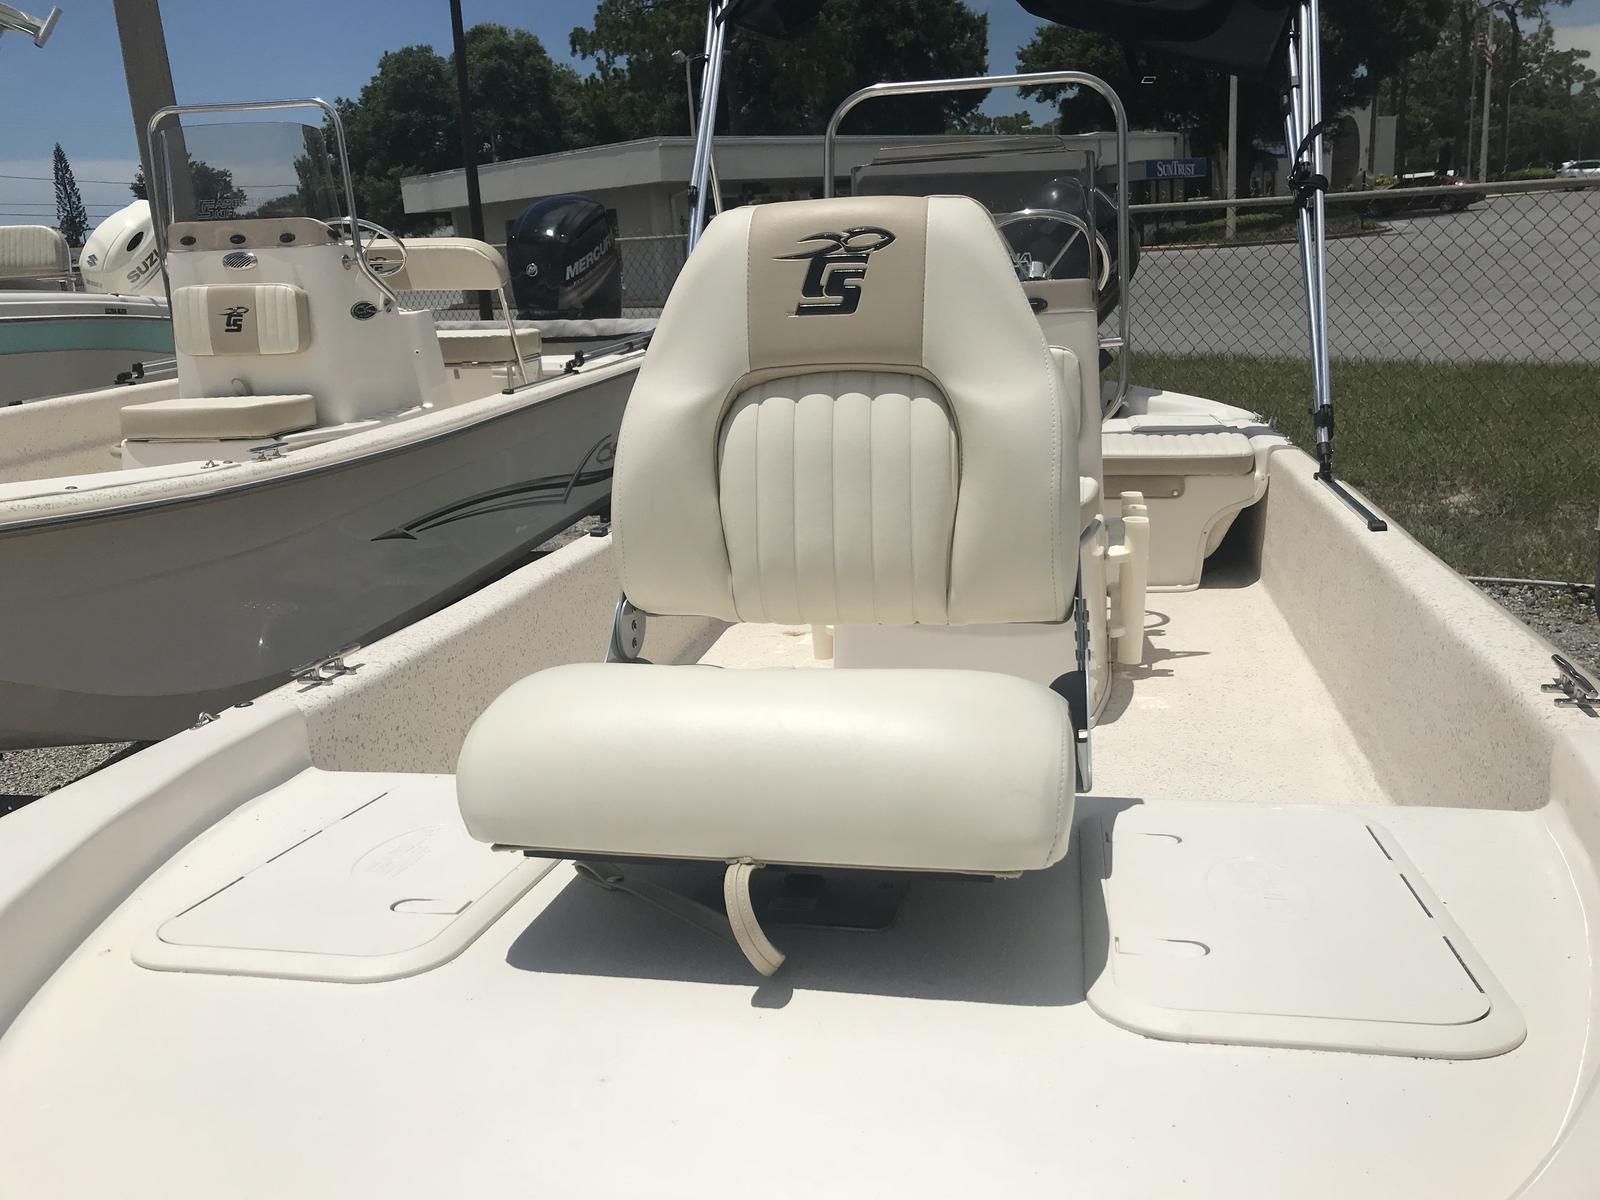 Enjoyable 2018 Carolina Skiff 17 Jv Cc For Sale In Holiday Fl Sunray Onthecornerstone Fun Painted Chair Ideas Images Onthecornerstoneorg